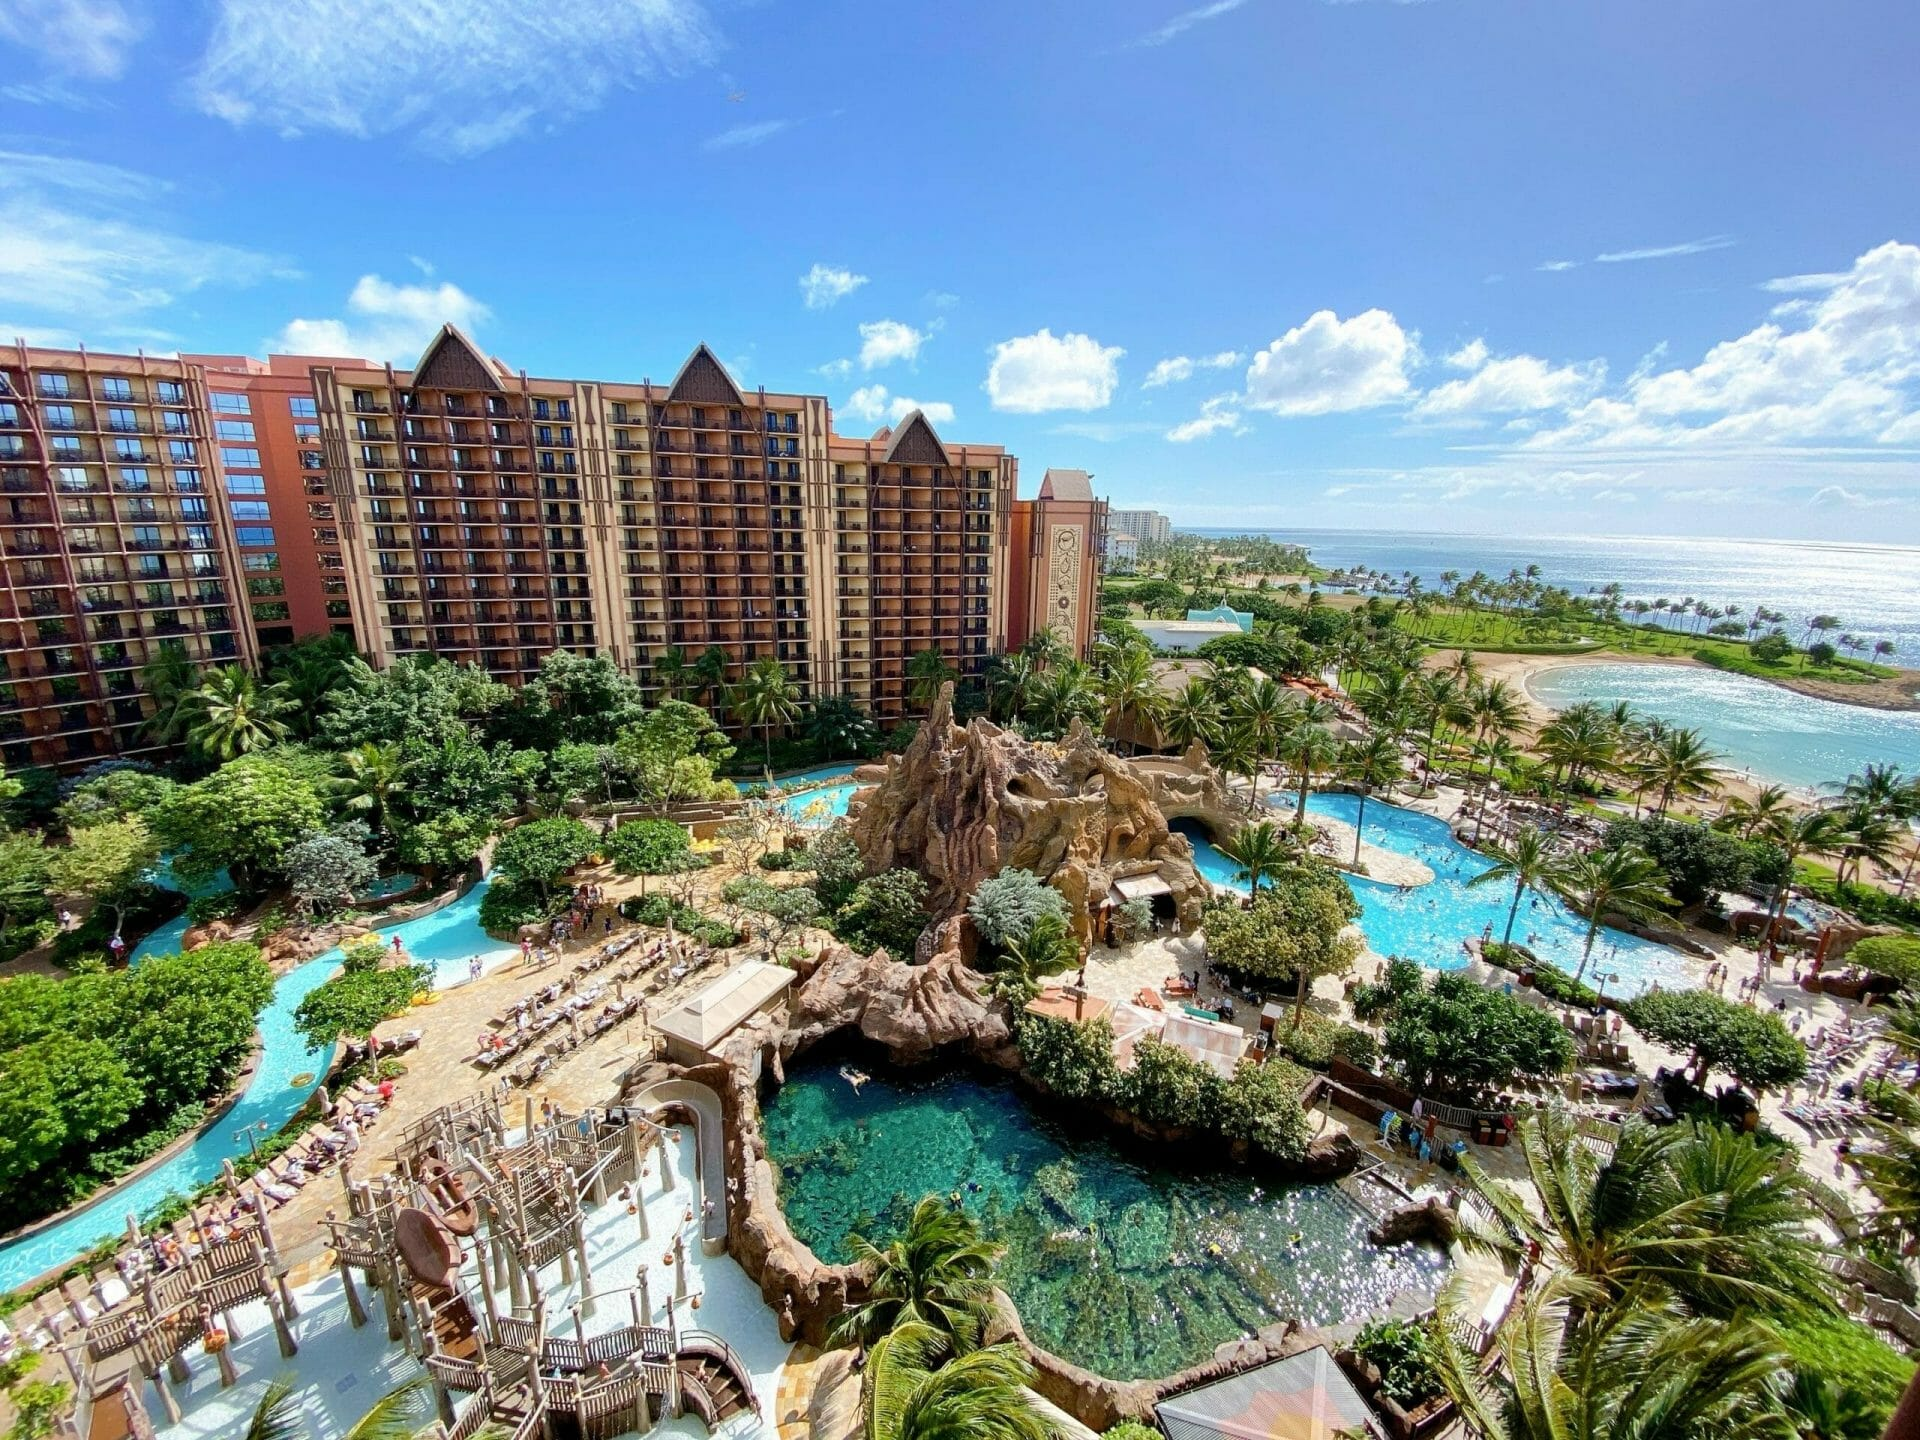 Save Up to 30% on Select Rooms for 5-Night Stays at Aulani, A Disney Resort & Spa